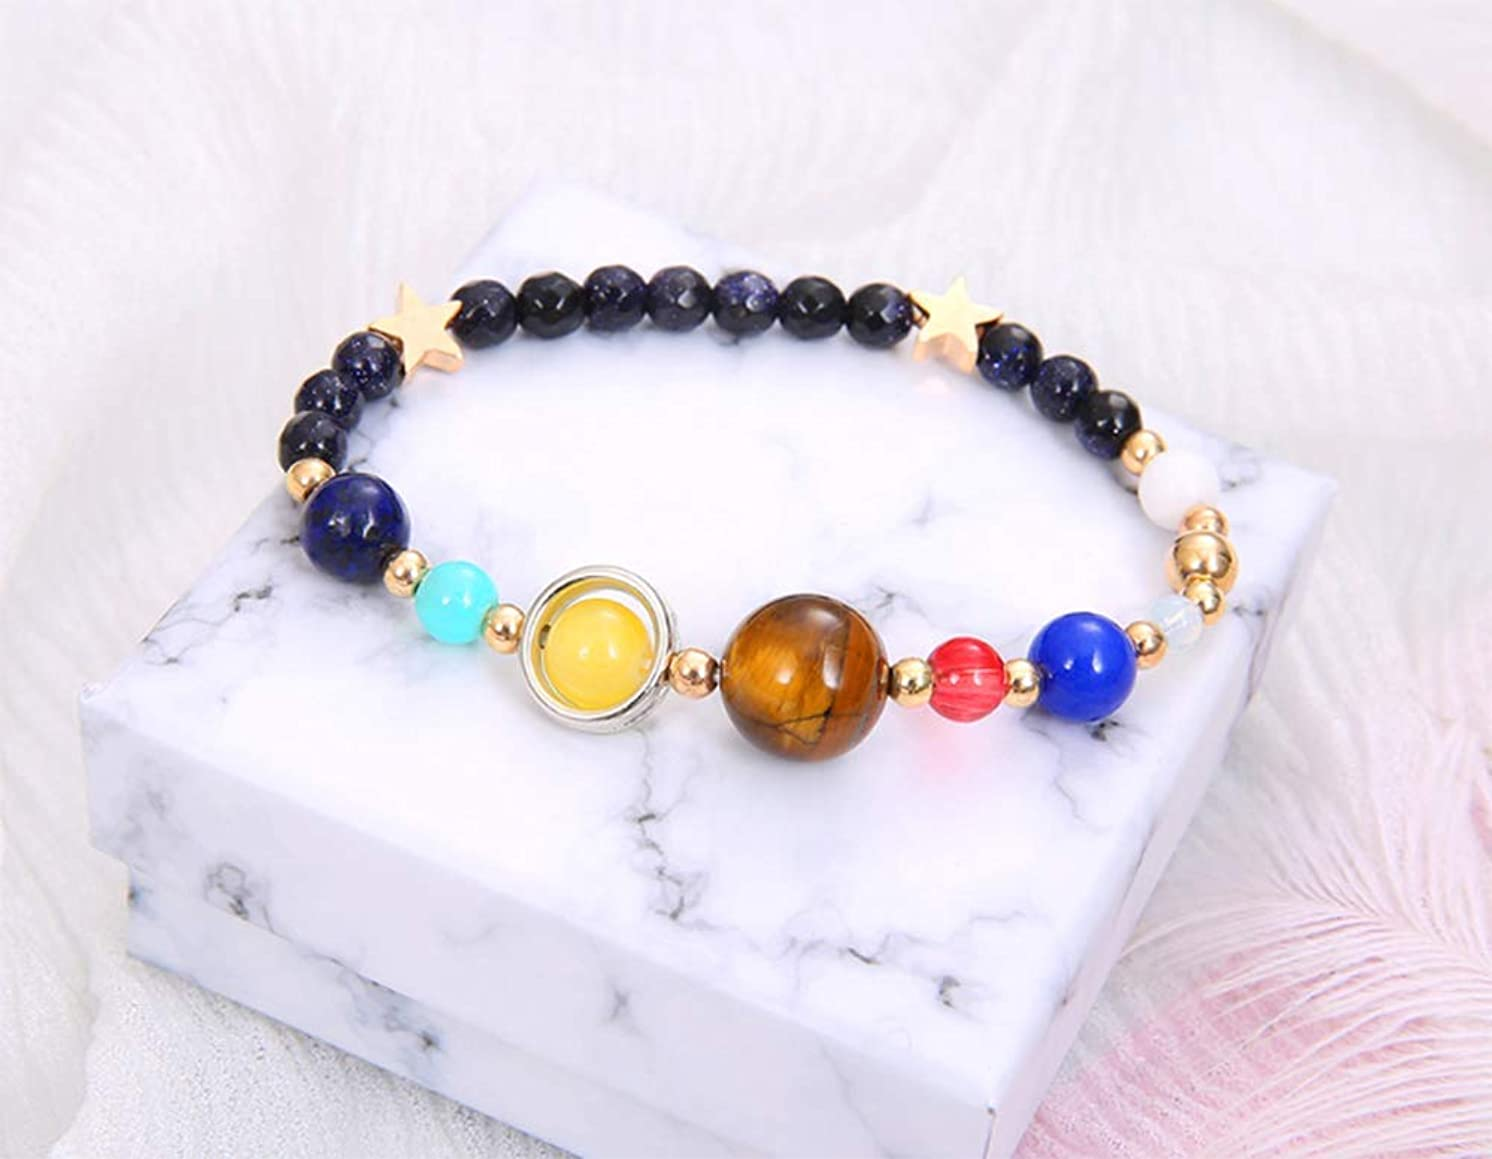 Aimys Women Stone Bead Charm Bracelet Universe Galaxy The Eight Planets in The Solar System Guardian Star Bracelets The Nine Planets Natural Lava Rock Beads (Rubber Band)